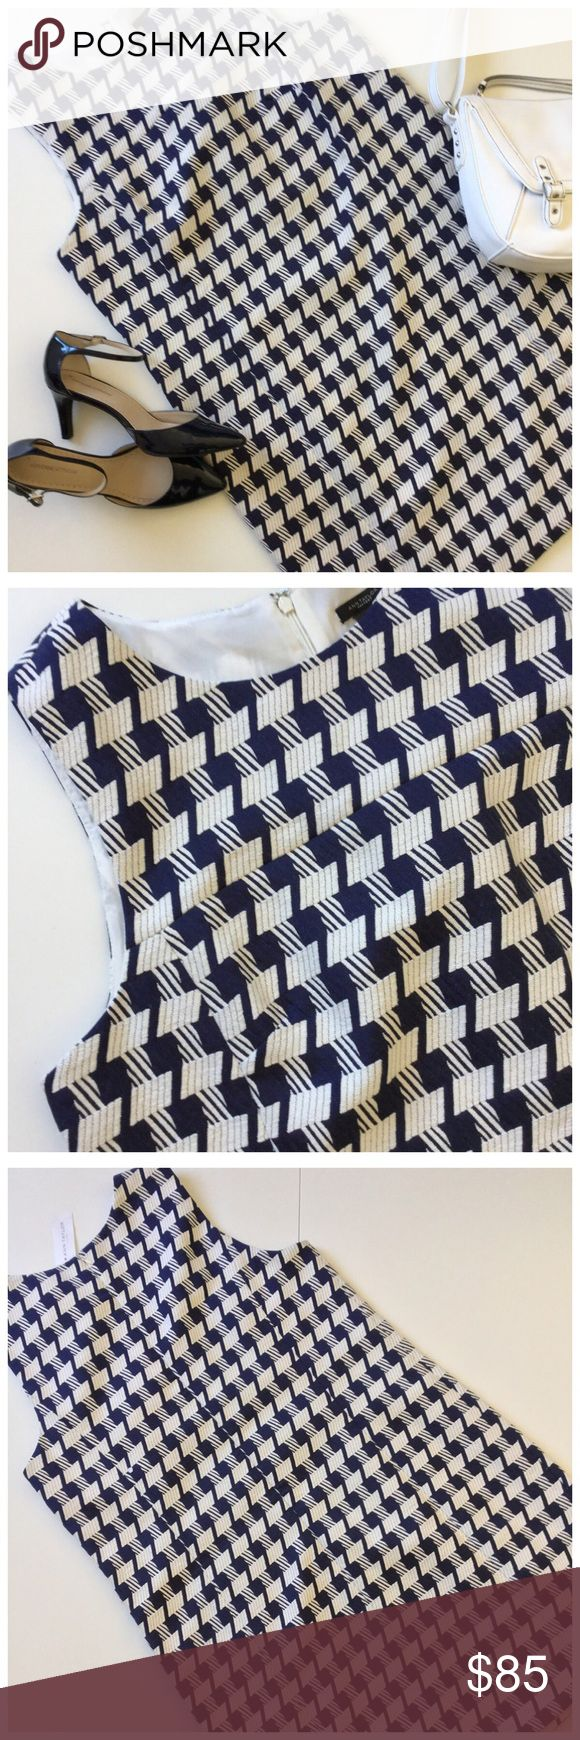 """🆕 Ann Taylor Dress NWT Pretty textured weave blue and white fabric in a geo patter. Sleeveless. Seaming & darts for shape but not clingy. Fully lined. Concealed back zipper. Great with a yellow or red sweater or jacket for Spring and on its own in Summer. 42"""" bust. 42"""" waist. 46"""" hip. 37"""" length from shoulder. New with tags. Bag available in separate listing. Shoes available soon. Ann Taylor Factory Dresses"""